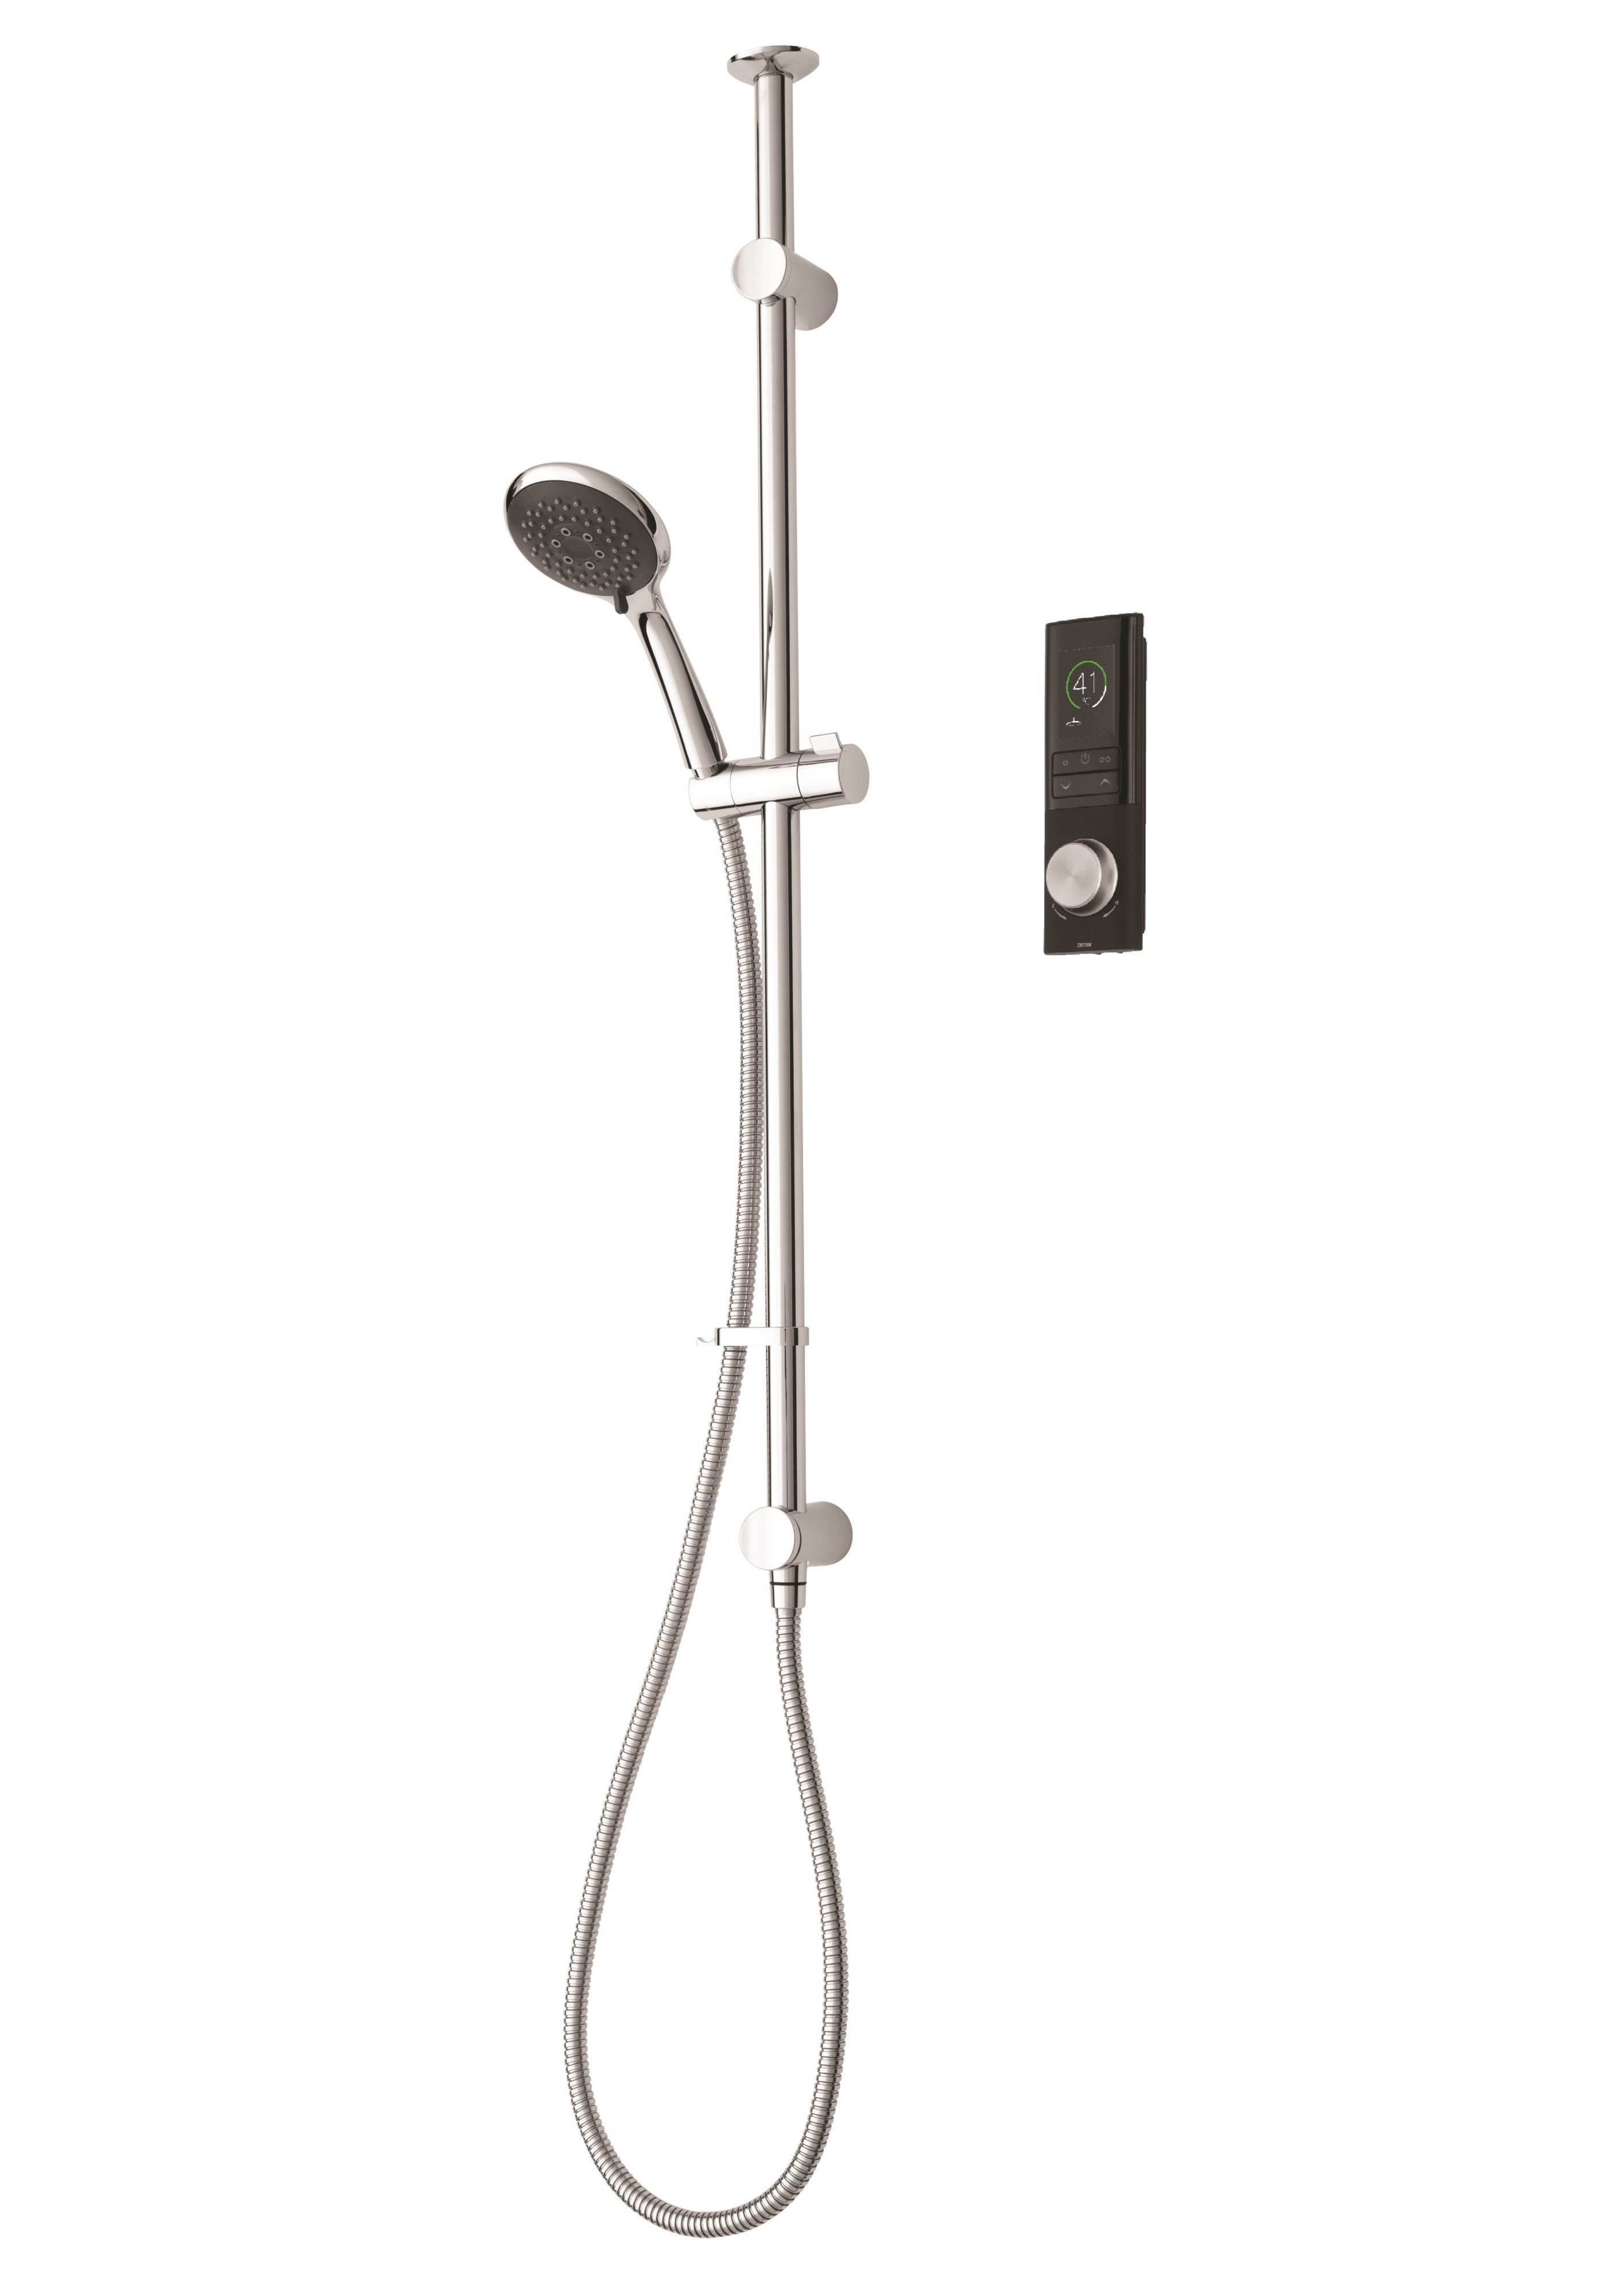 Triton Home Black Thermostatic Mixer Shower With Through Ceiling Riser Rail, Pumped